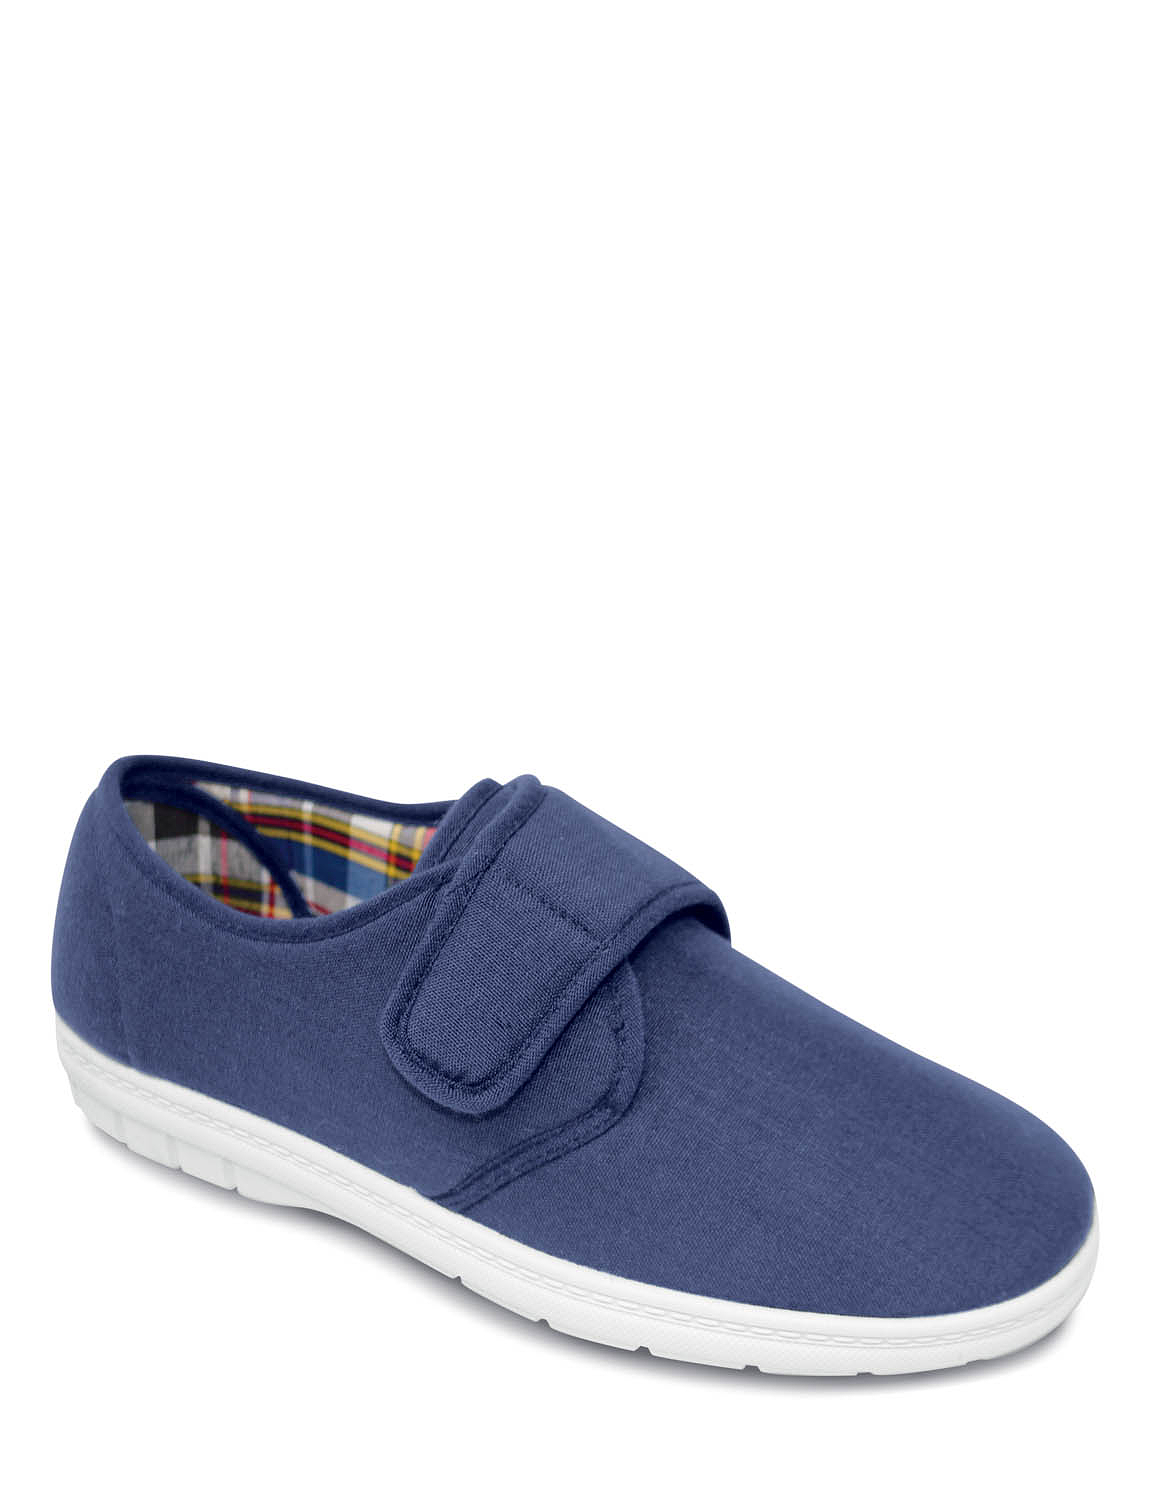 wide fit touch fasten canvas shoe chums